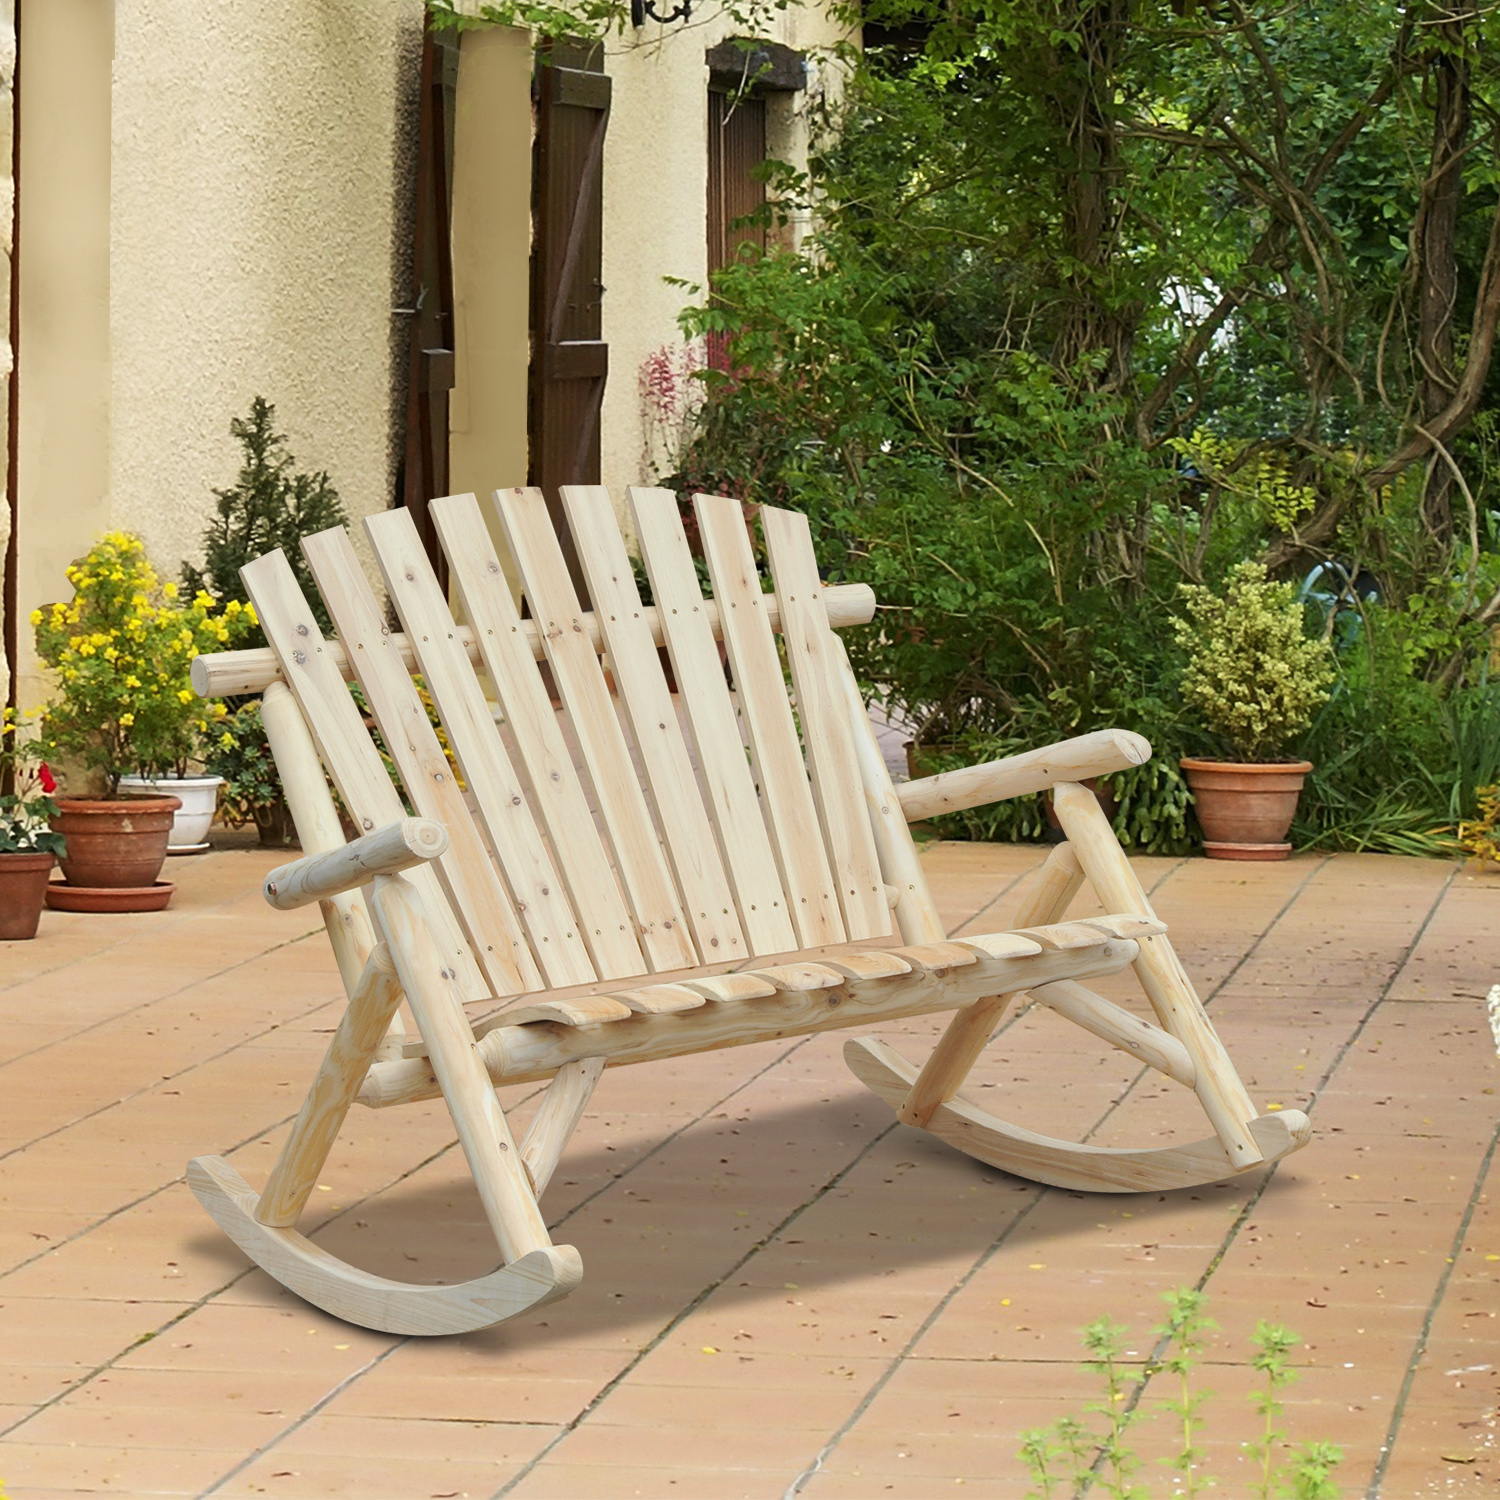 Outsunny 2 Person Fir Wood Rustic Outdoor Patio Adirondack ... destiné Fauteuil Adirondack Occasion